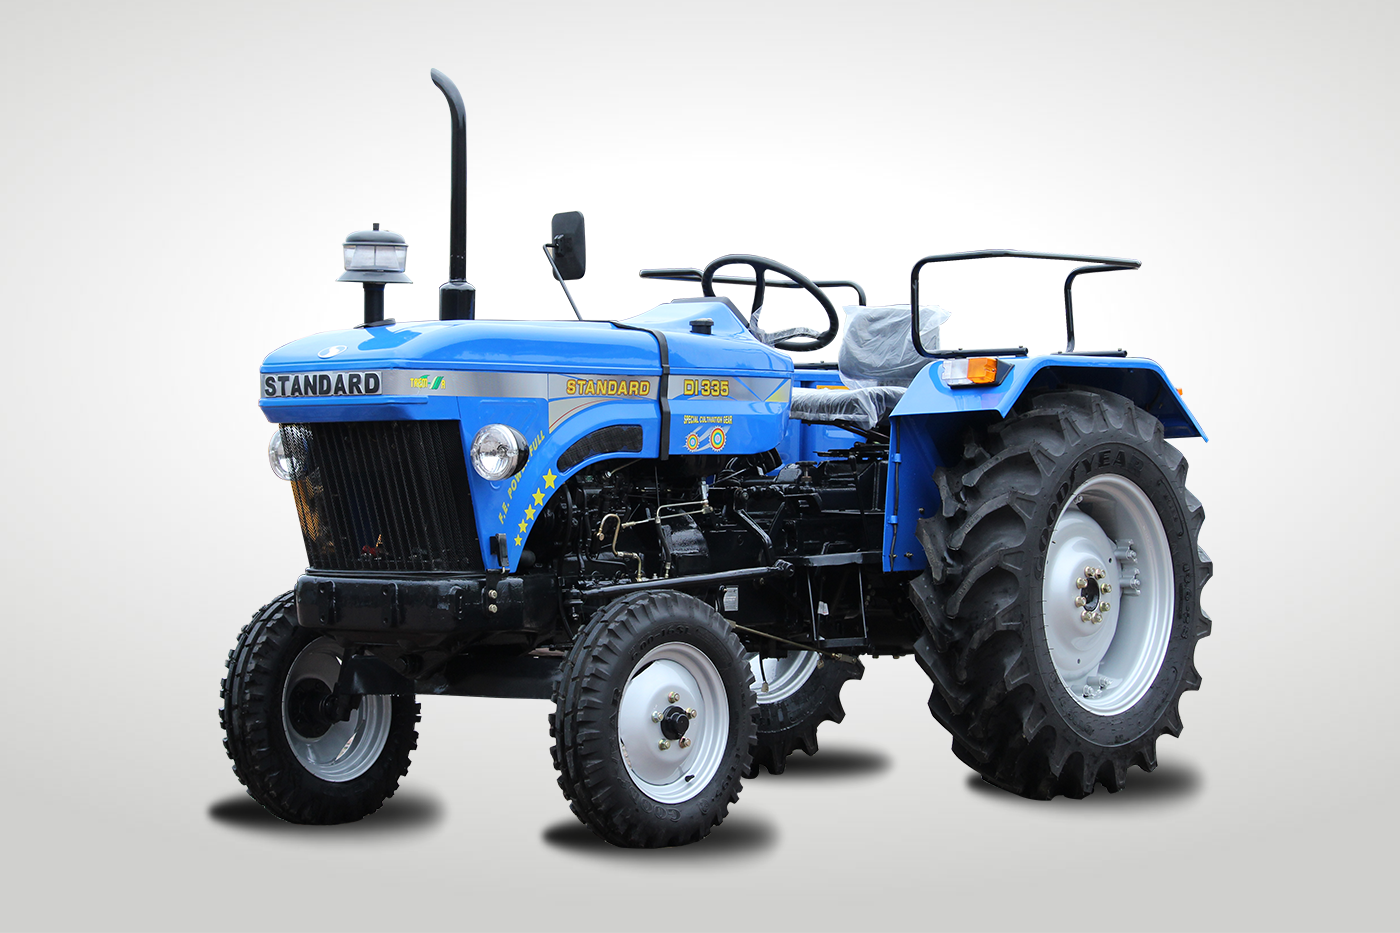 Standard DI 335 Tractor Price Specification